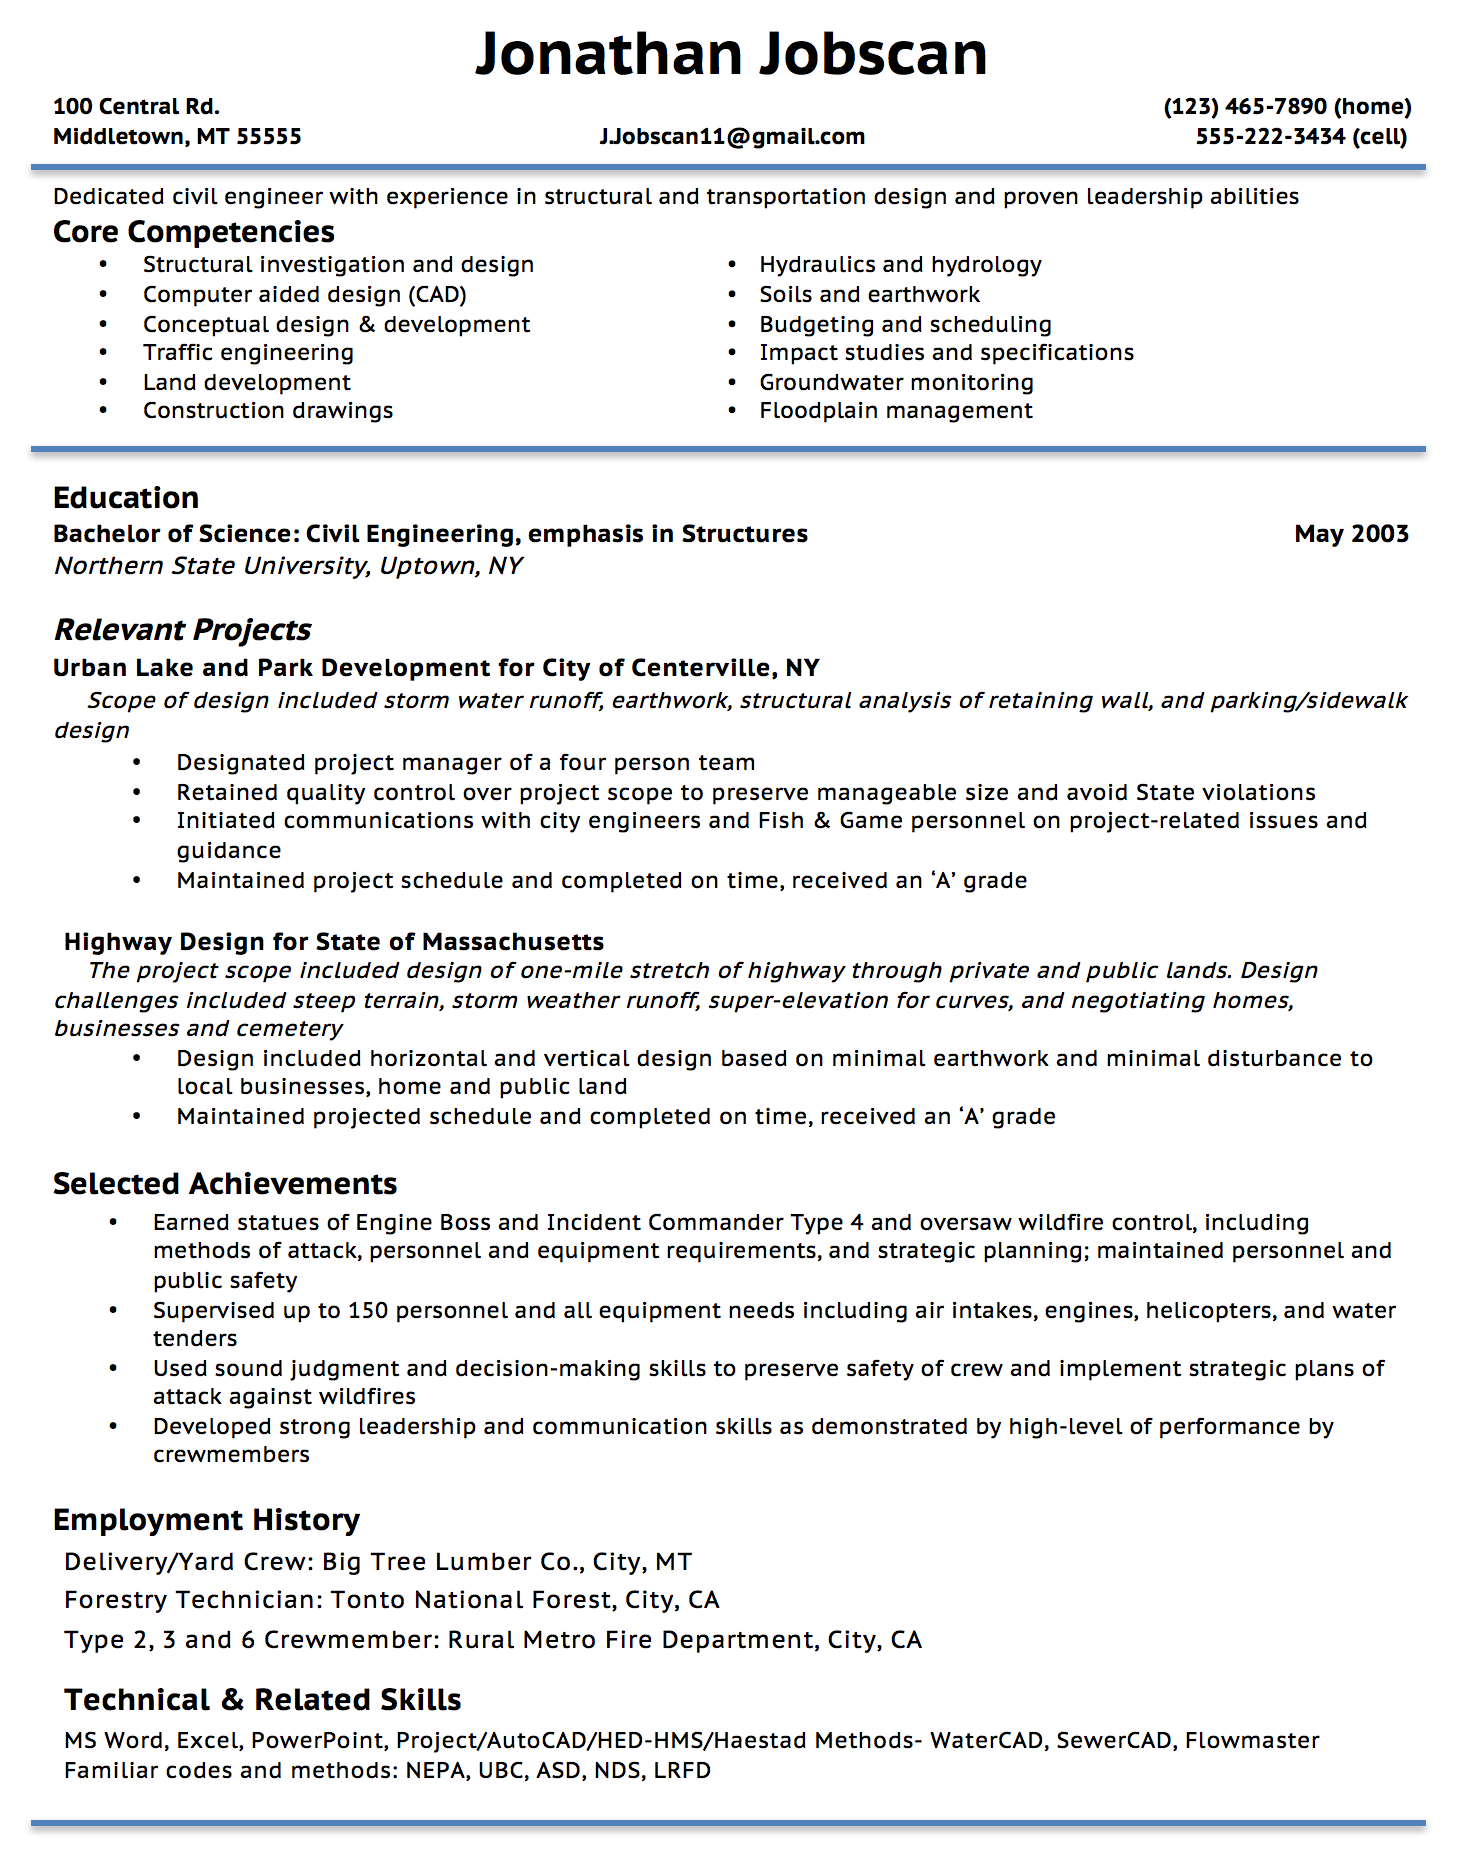 Opposenewapstandardsus  Scenic Resume Writing Guide  Jobscan With Licious Example Of A Functional Resume Format With Archaic Interests For Resume Also Server Job Description For Resume In Addition Sales Associate Resume Skills And Resume And Cover Letter Template As Well As Nursing Skills For Resume Additionally Free Resume Writer From Jobscanco With Opposenewapstandardsus  Licious Resume Writing Guide  Jobscan With Archaic Example Of A Functional Resume Format And Scenic Interests For Resume Also Server Job Description For Resume In Addition Sales Associate Resume Skills From Jobscanco